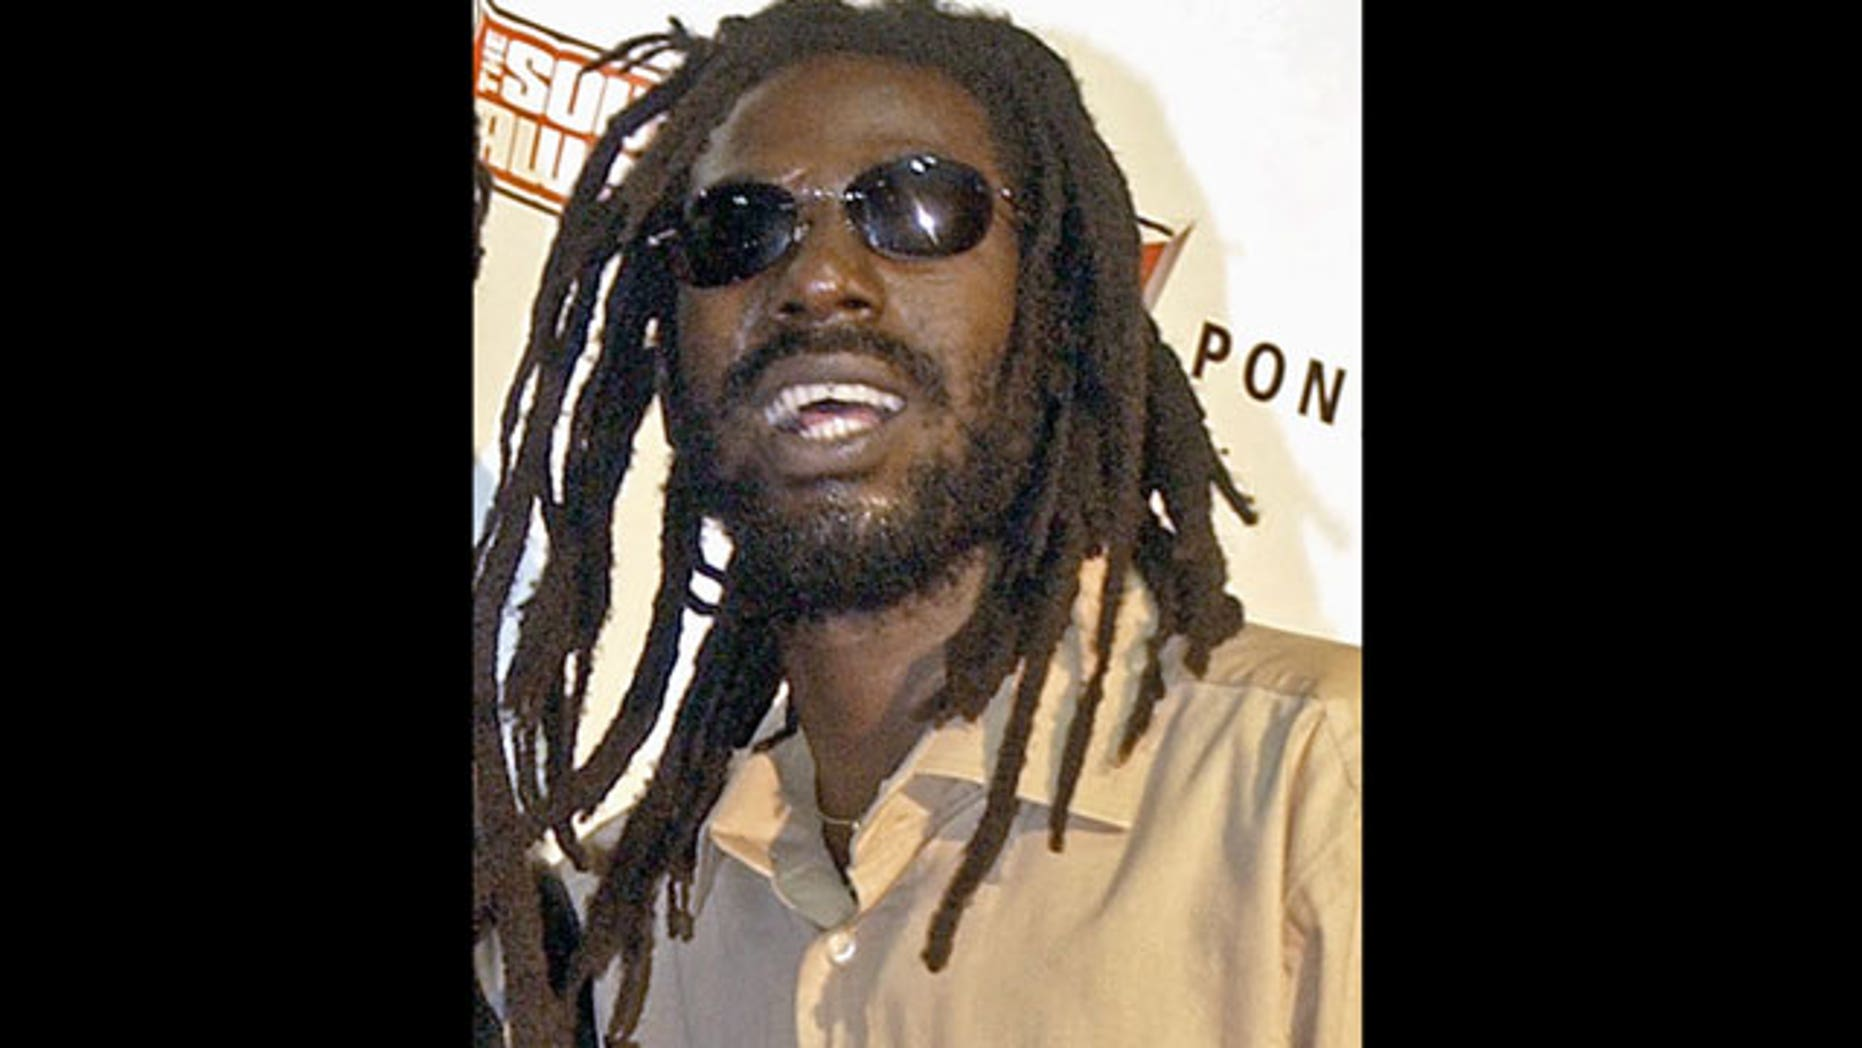 Singer Buju Banton is facing a life sentence if convicted.